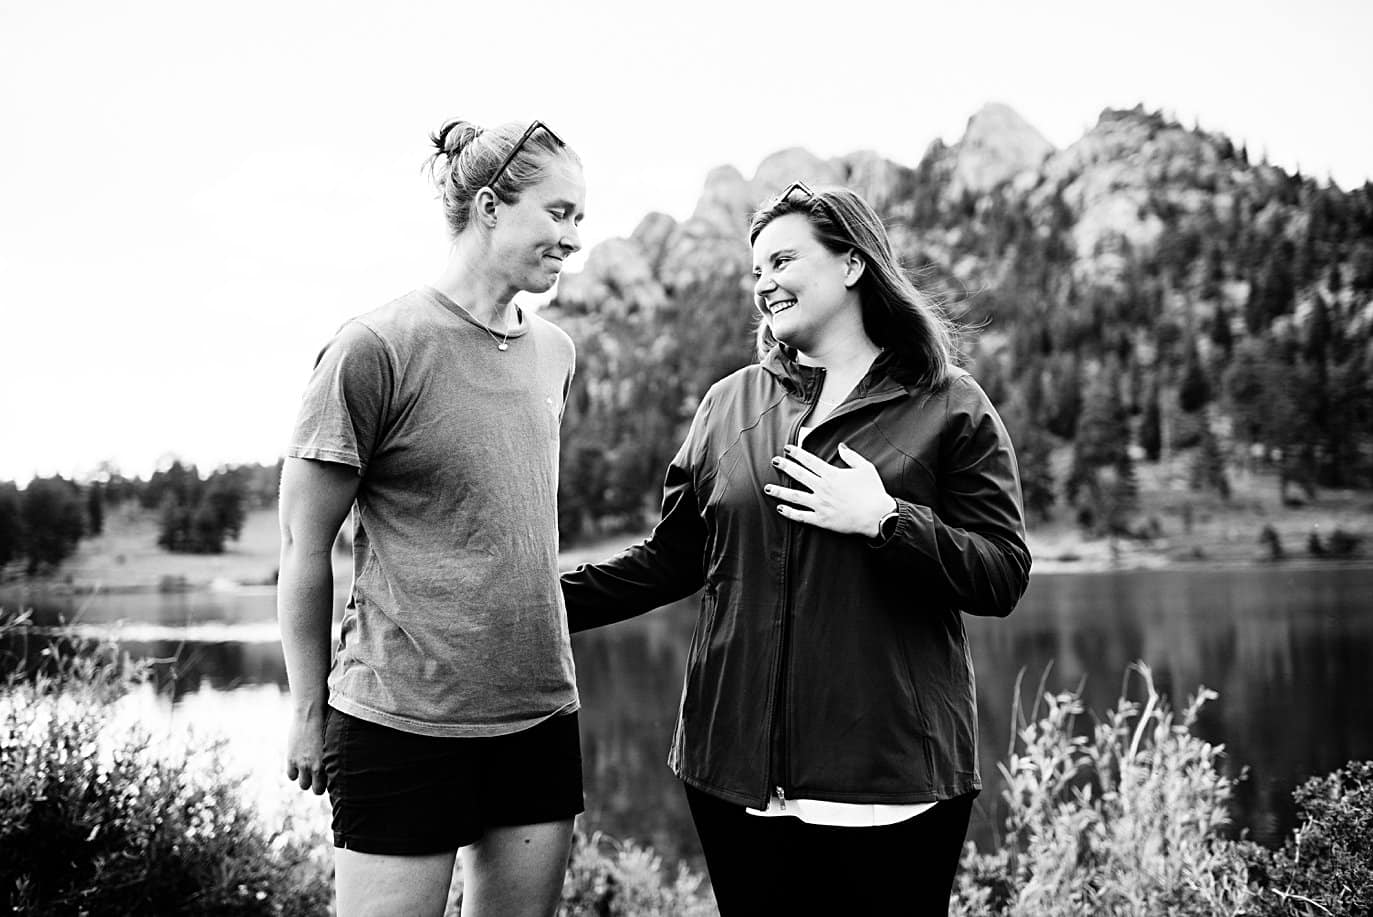 brides take in moment of proposal at Estes Park Lily Lake by Estes Park wedding photographer Jennie Crate